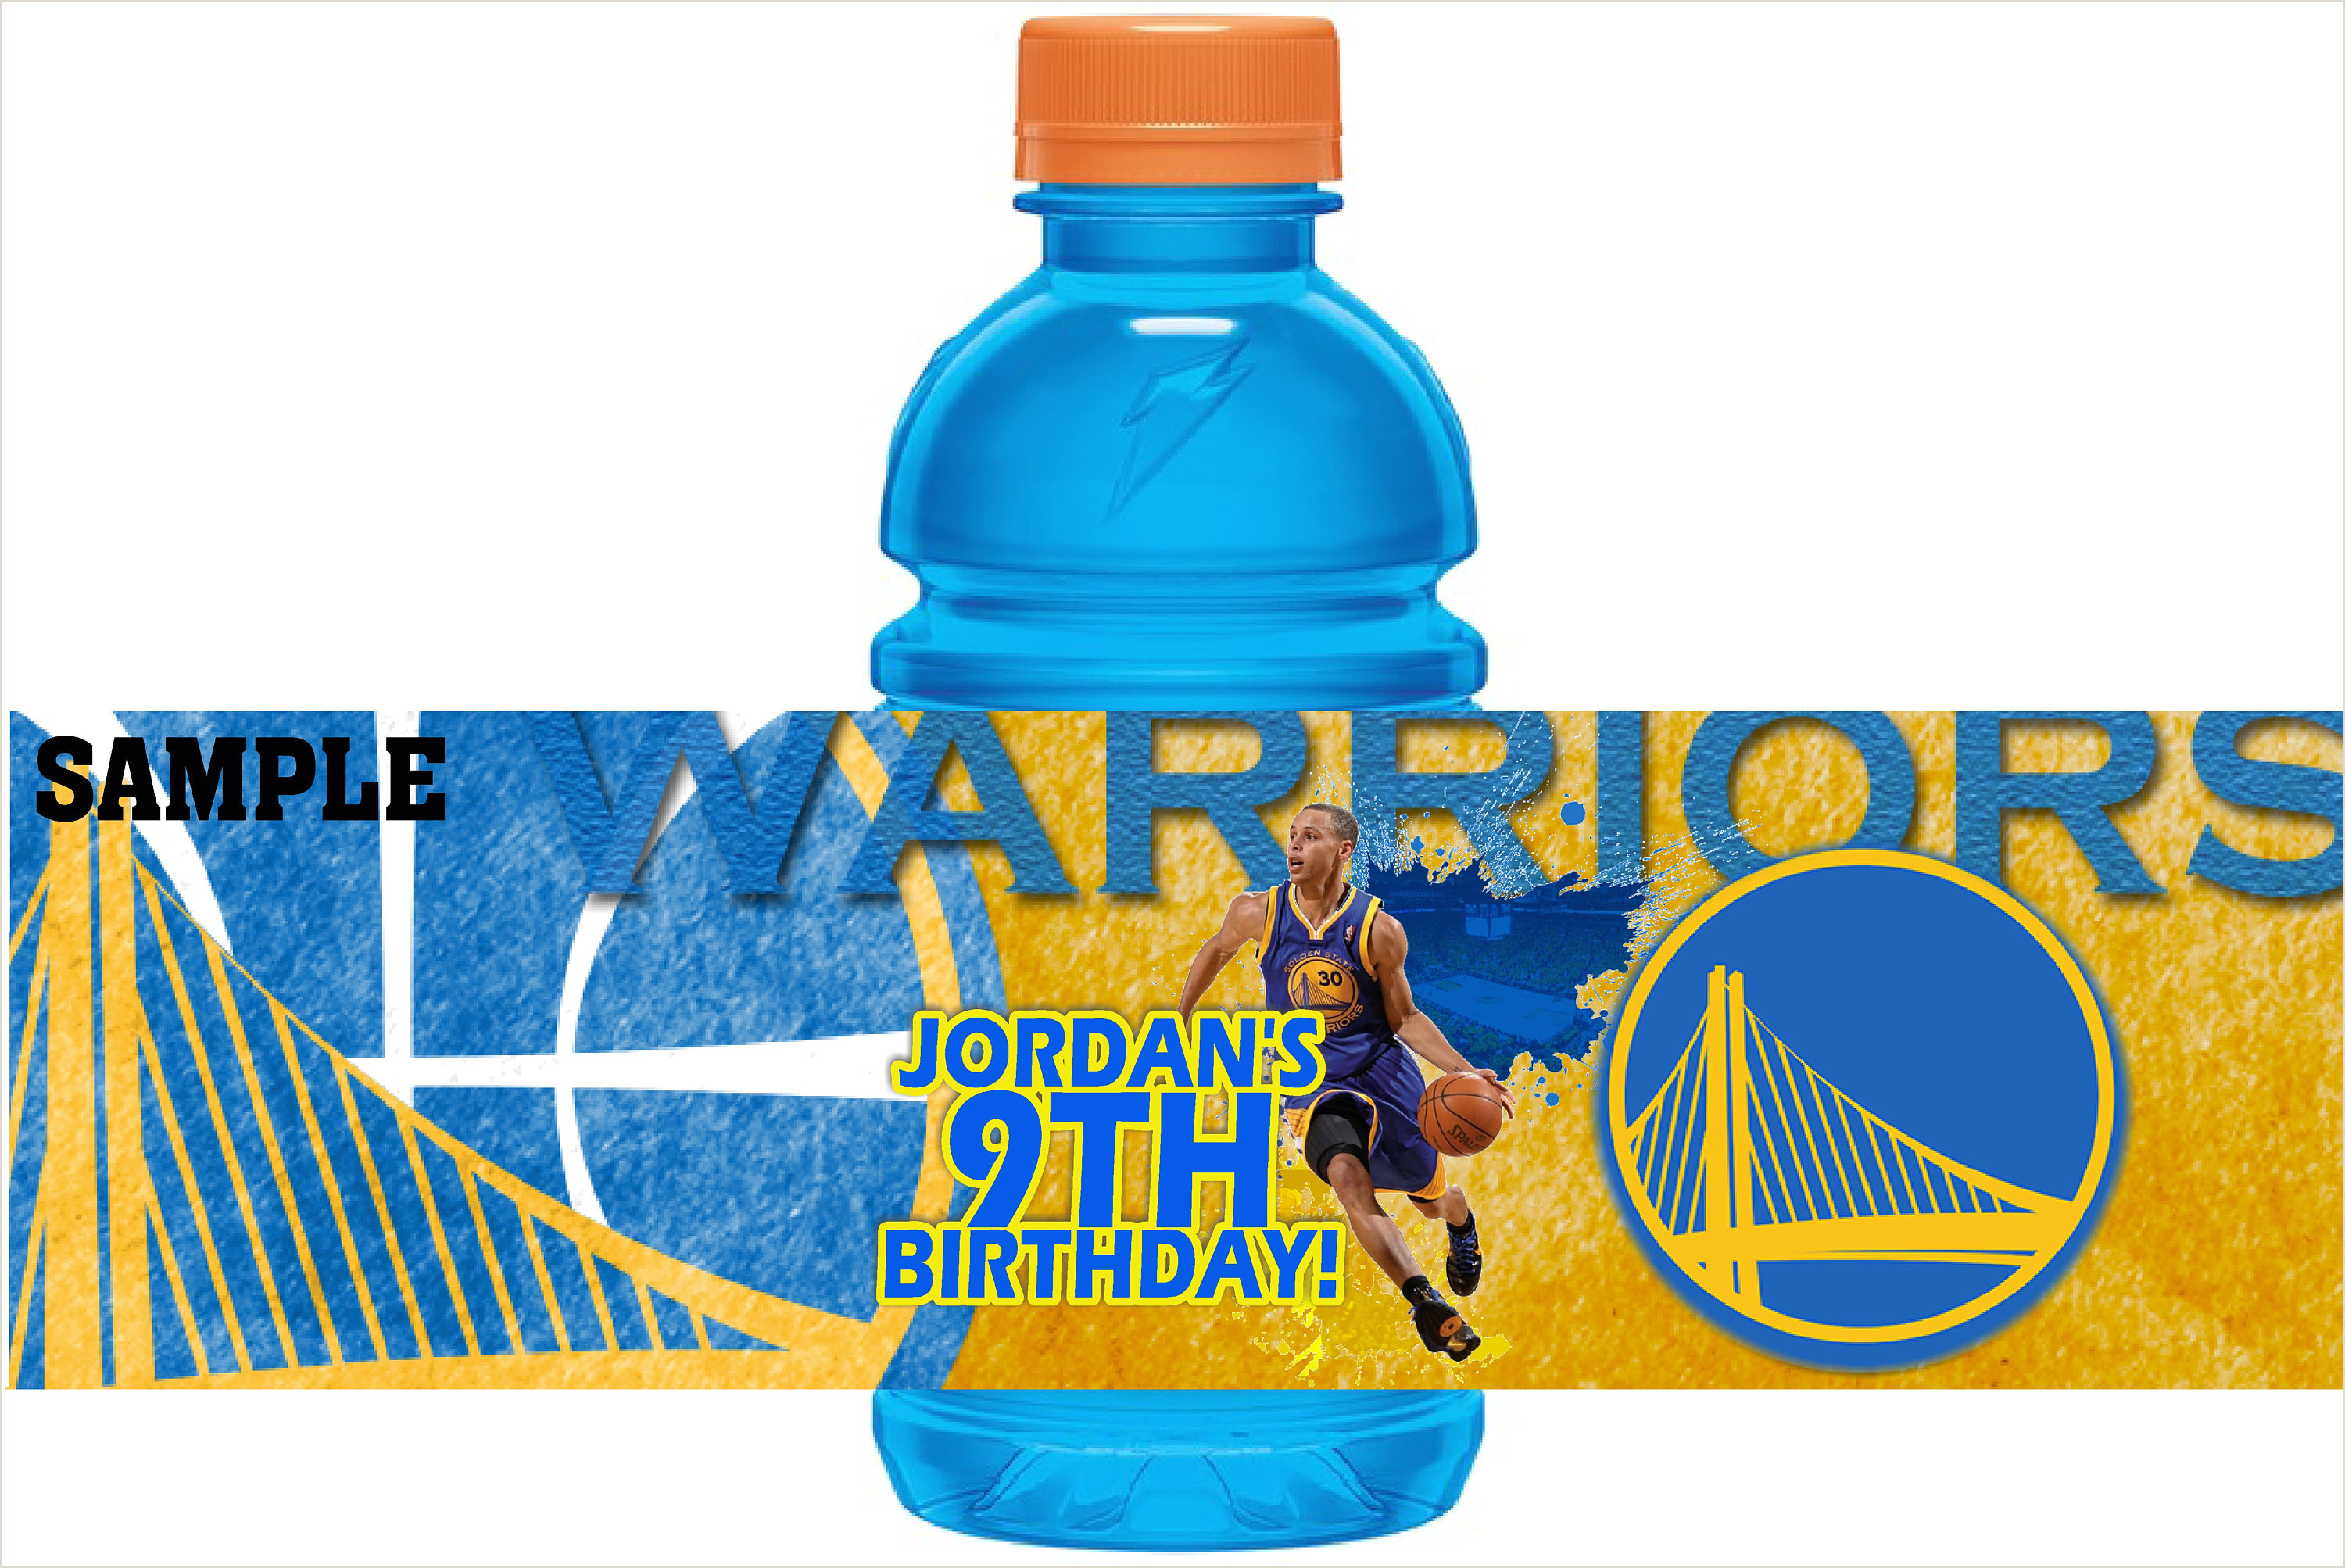 Ayesha Curry Wedding Ring Printable Gatorade 12 Oz Labels Basketball Golden State Warriors Stephen Curry Birthday Party